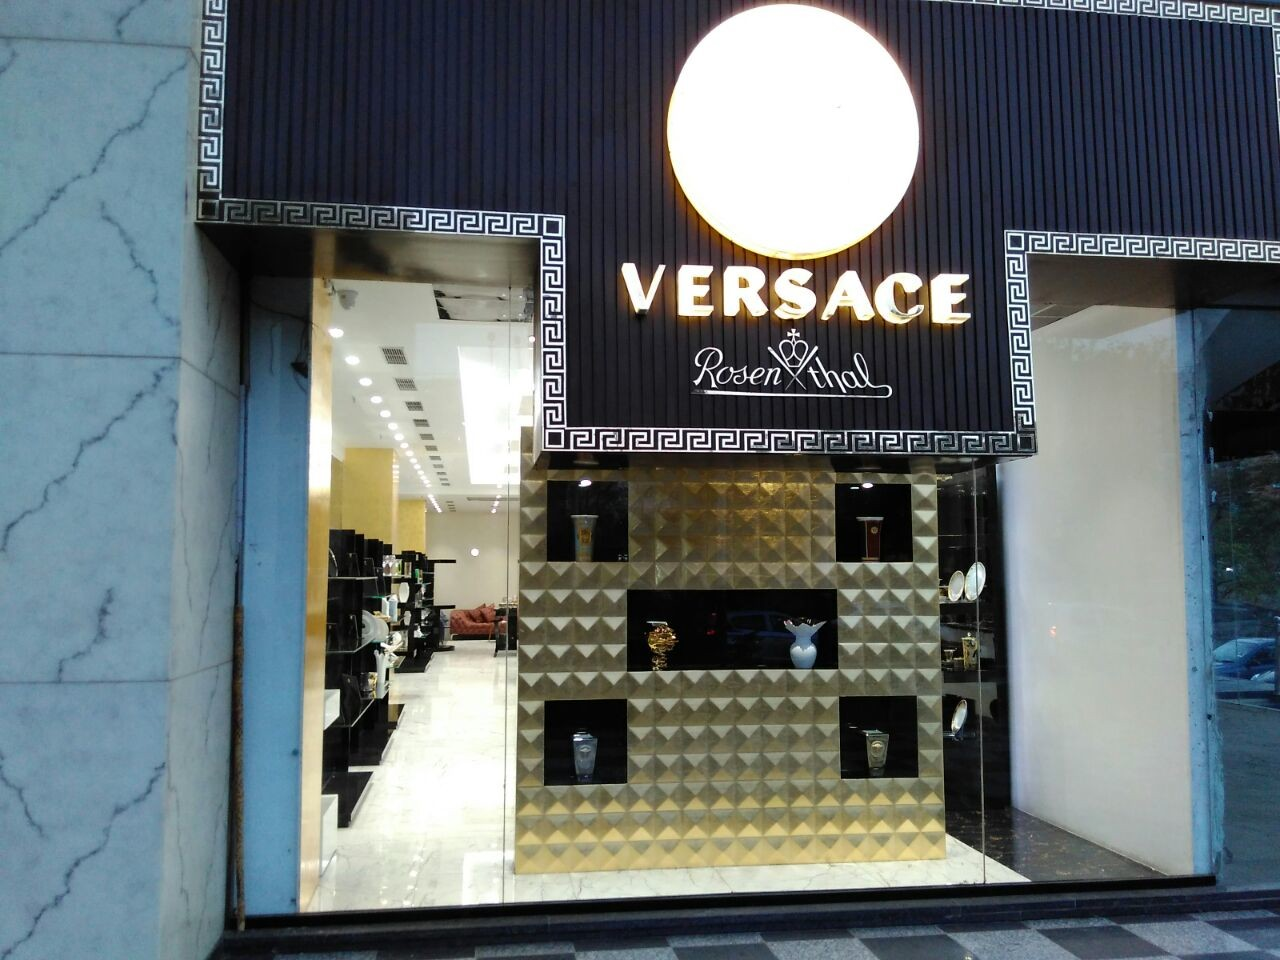 Modern Showroom Interior Design of Versace - Rosenthal by 3DA